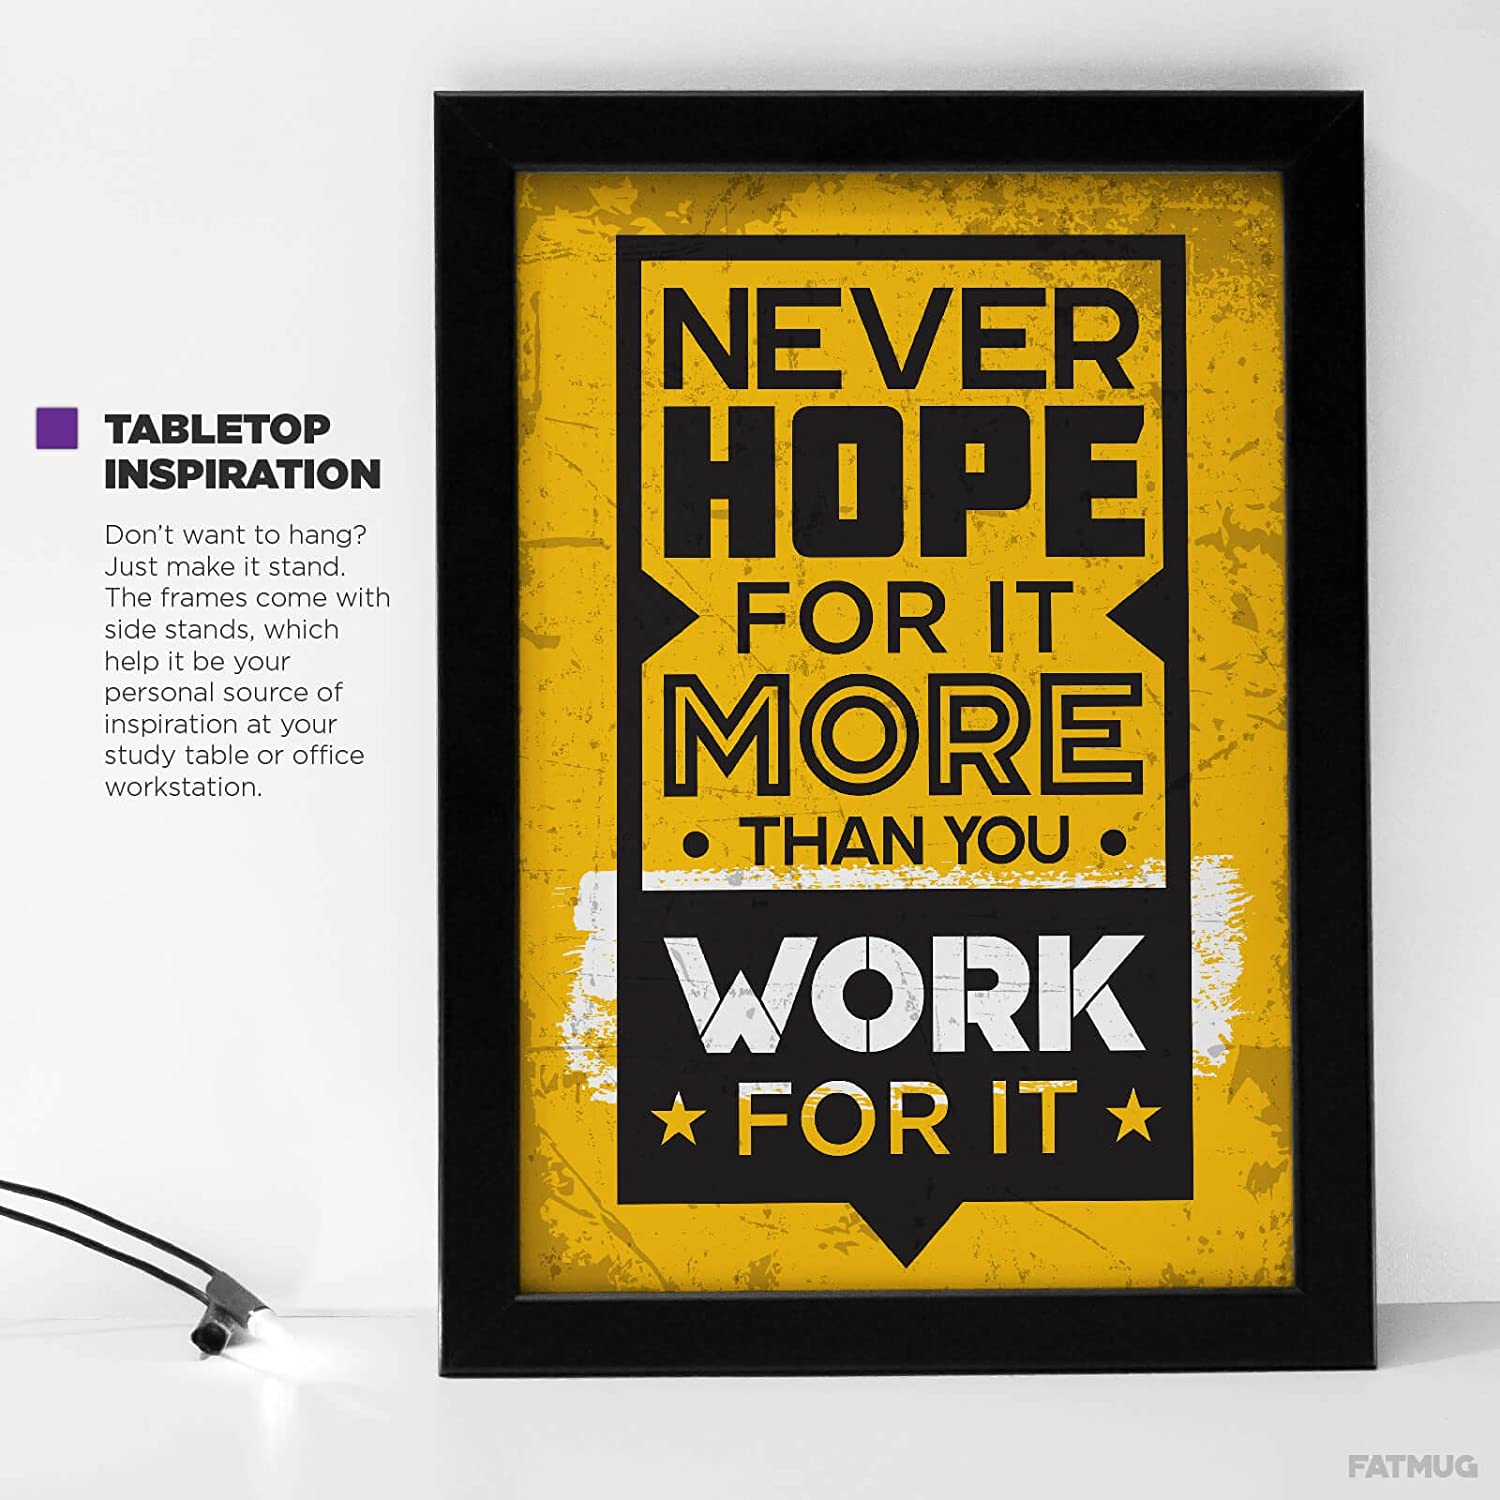 Fatmug Motivational Posters With Frames For Office Desk, Home And ...